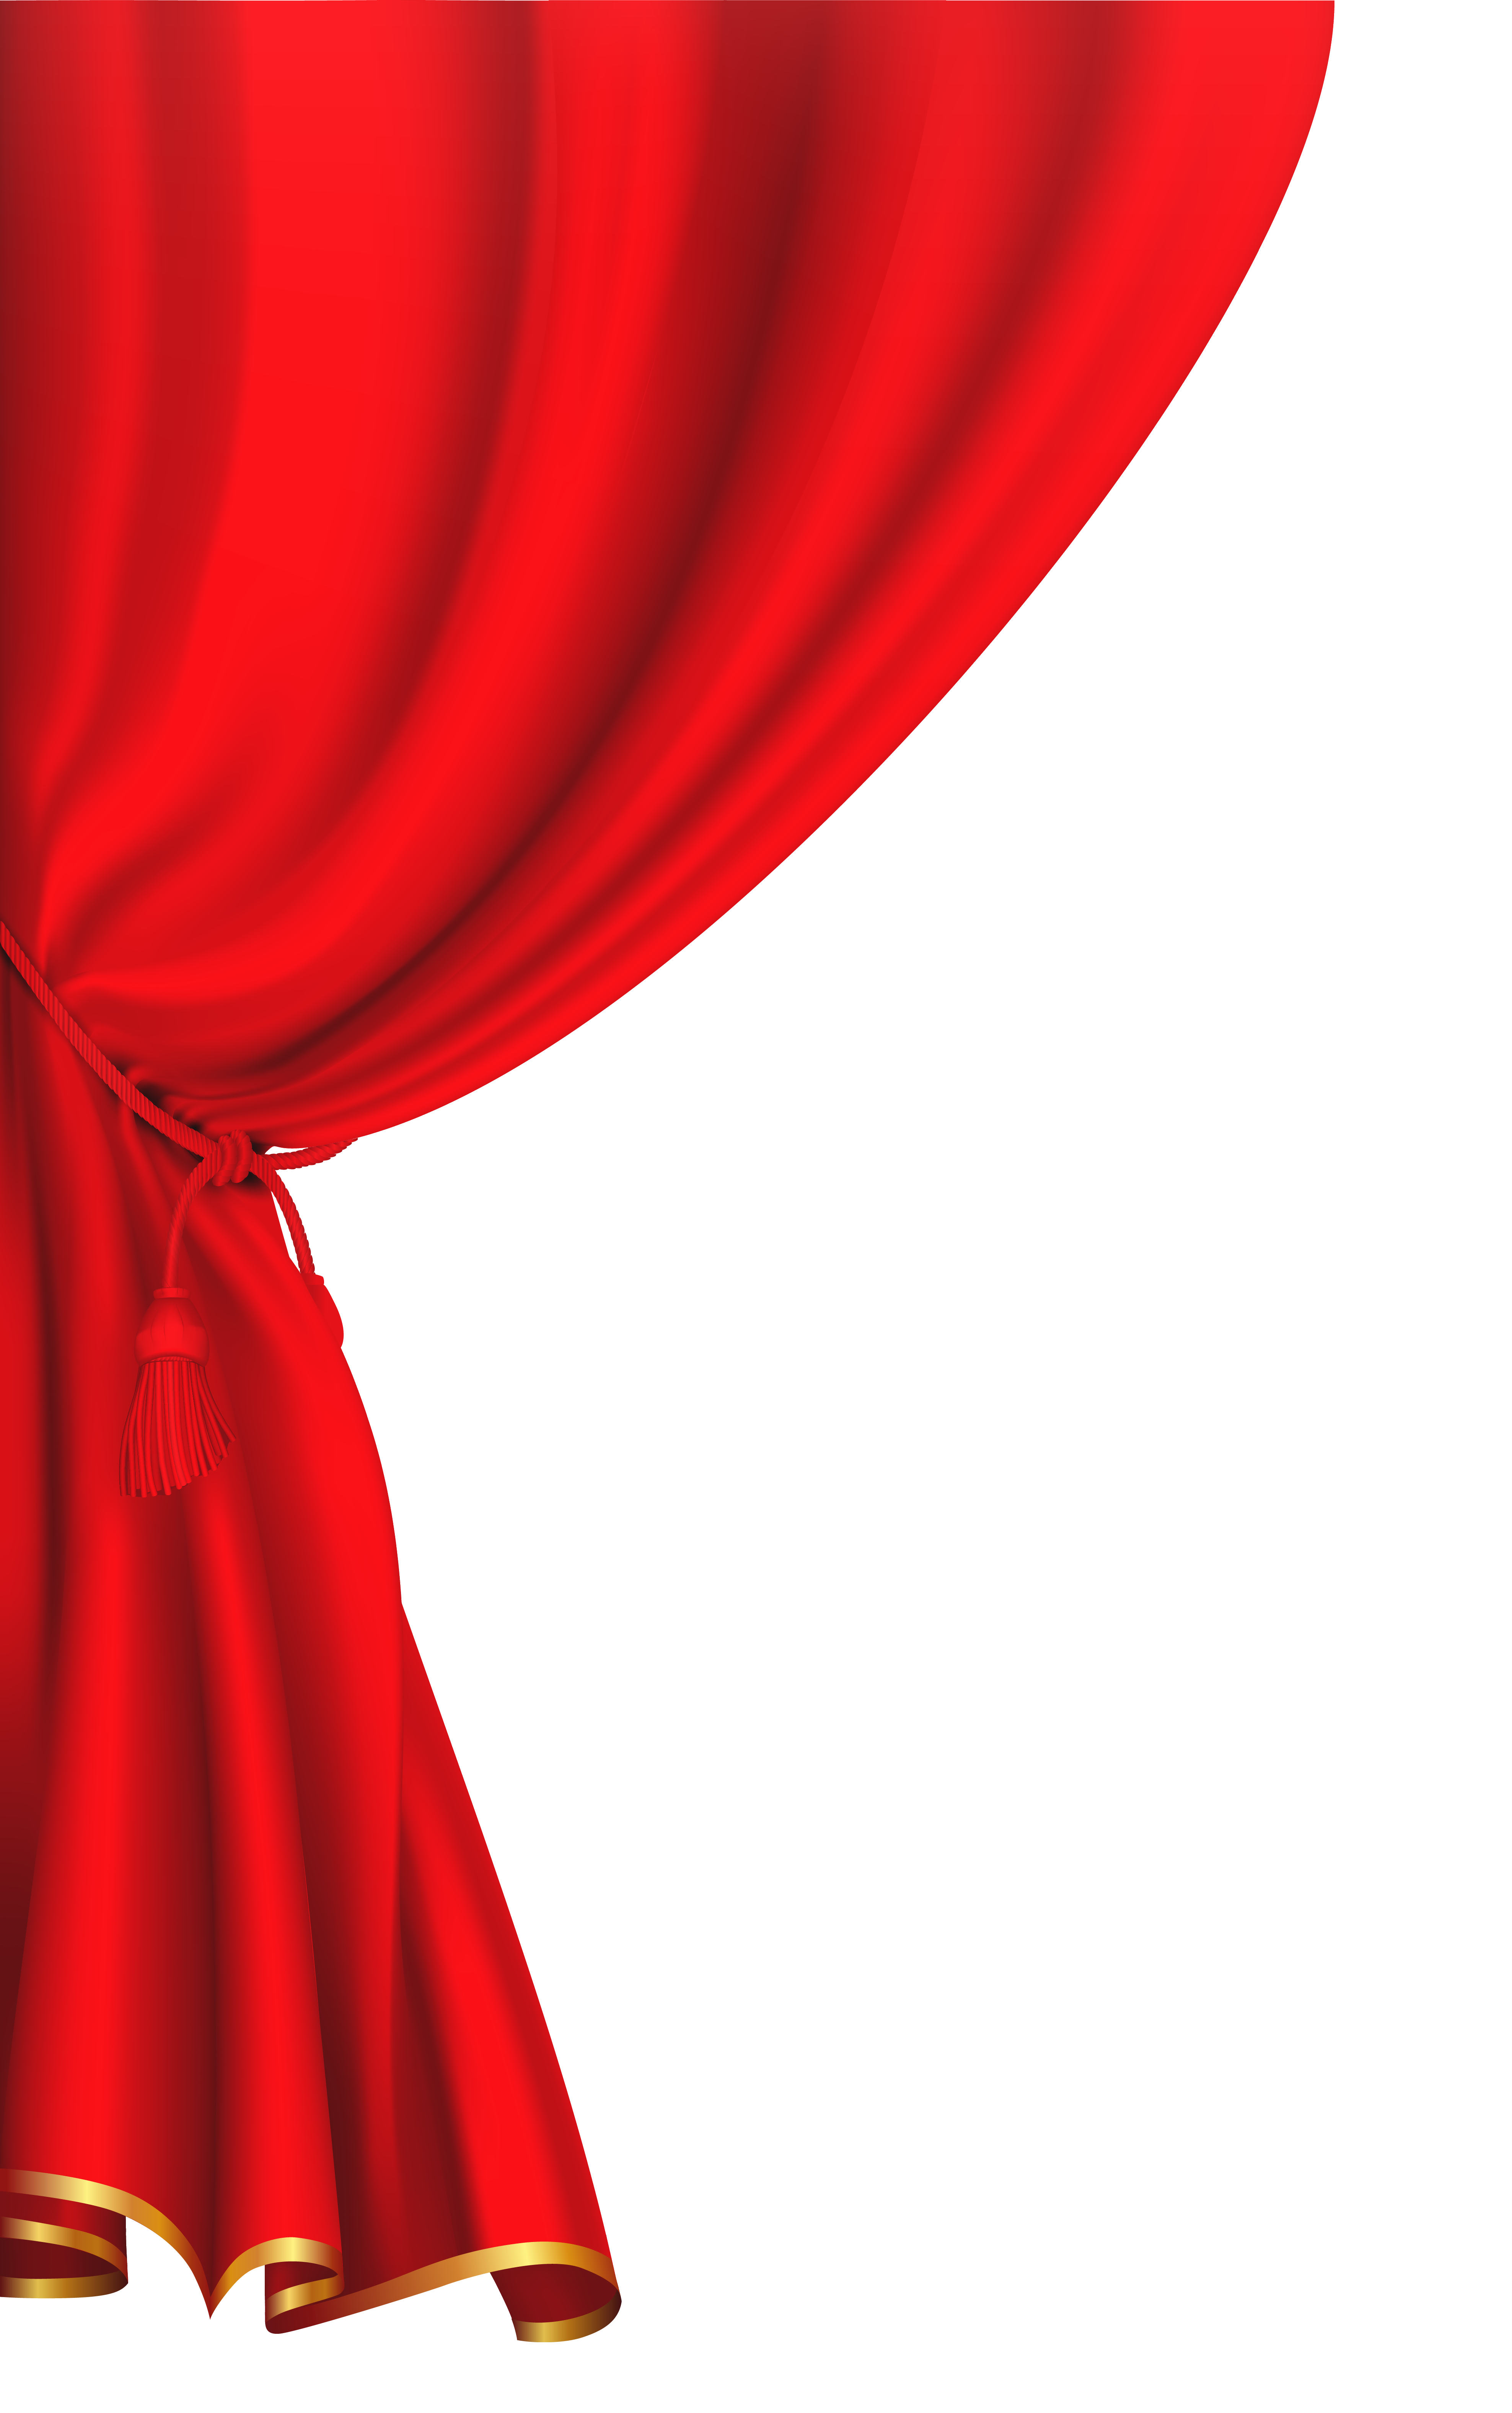 Curtain clipart cute. Red image gallery yopriceville clipart stock